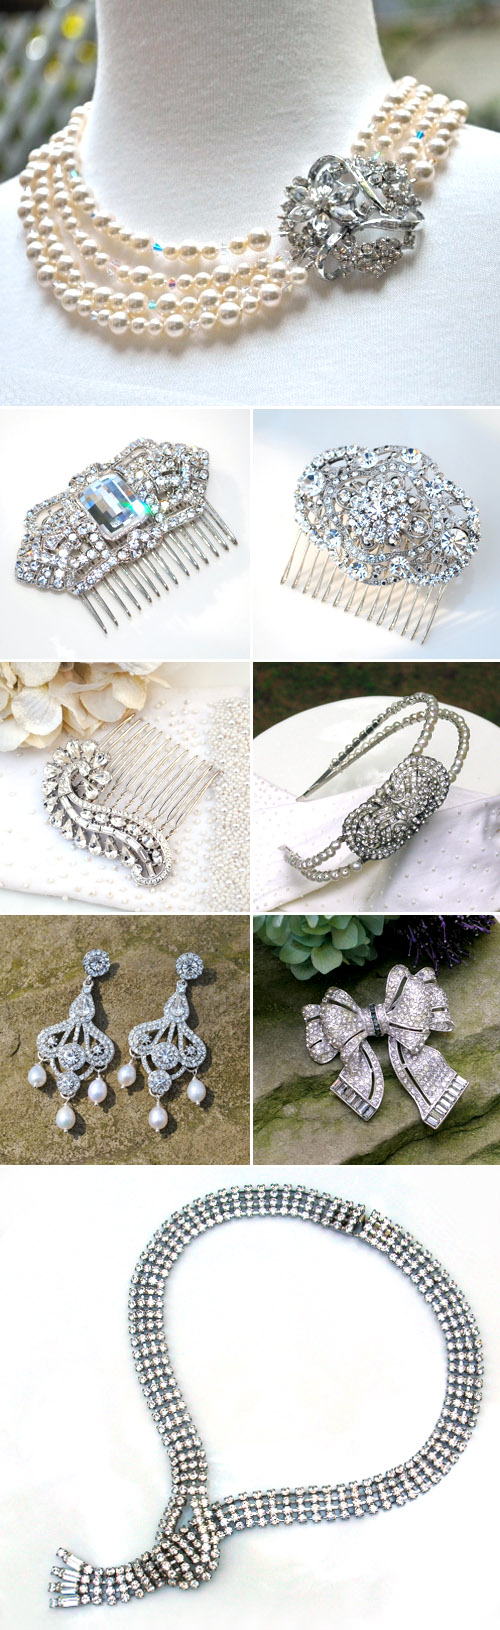 vintage and vintage-inspired wedding jewelry and accessories from Bel Canto Designs